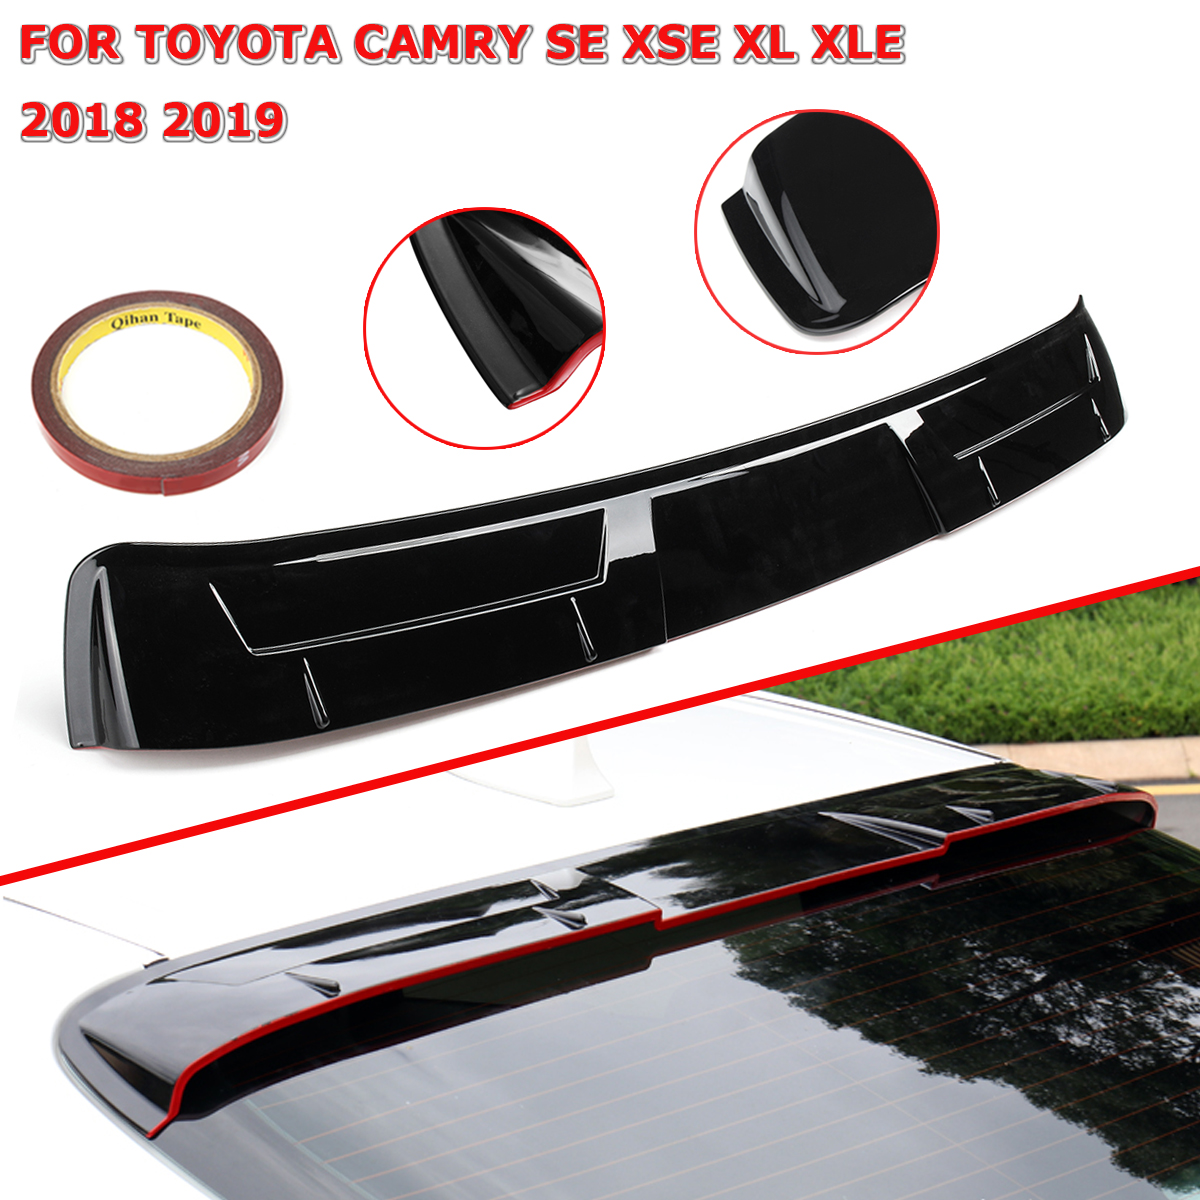 Car Black Rear Roof Spoiler Top Wing Lip W/3 Meters Glue ABS Plastic For Toyota Camry SE XSE XL XLE 2018 2019Car Black Rear Roof Spoiler Top Wing Lip W/3 Meters Glue ABS Plastic For Toyota Camry SE XSE XL XLE 2018 2019